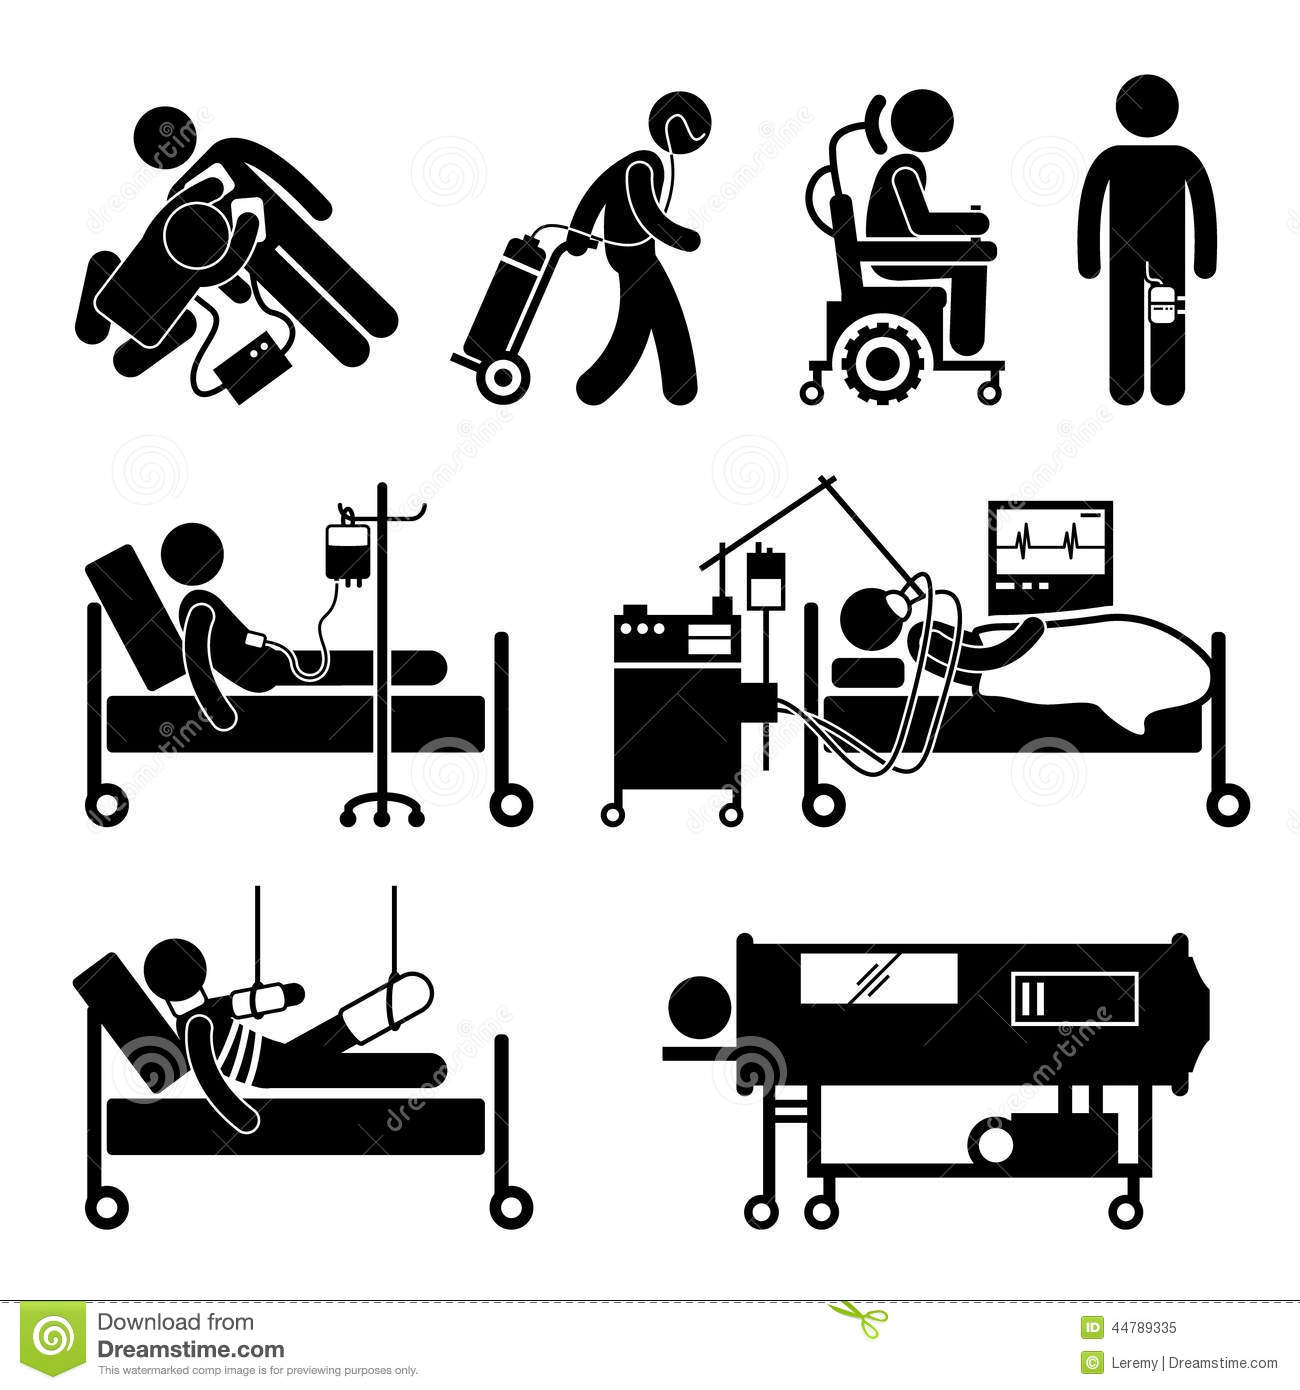 Life Support Equipments Cliparts Icons Stock Vector ...